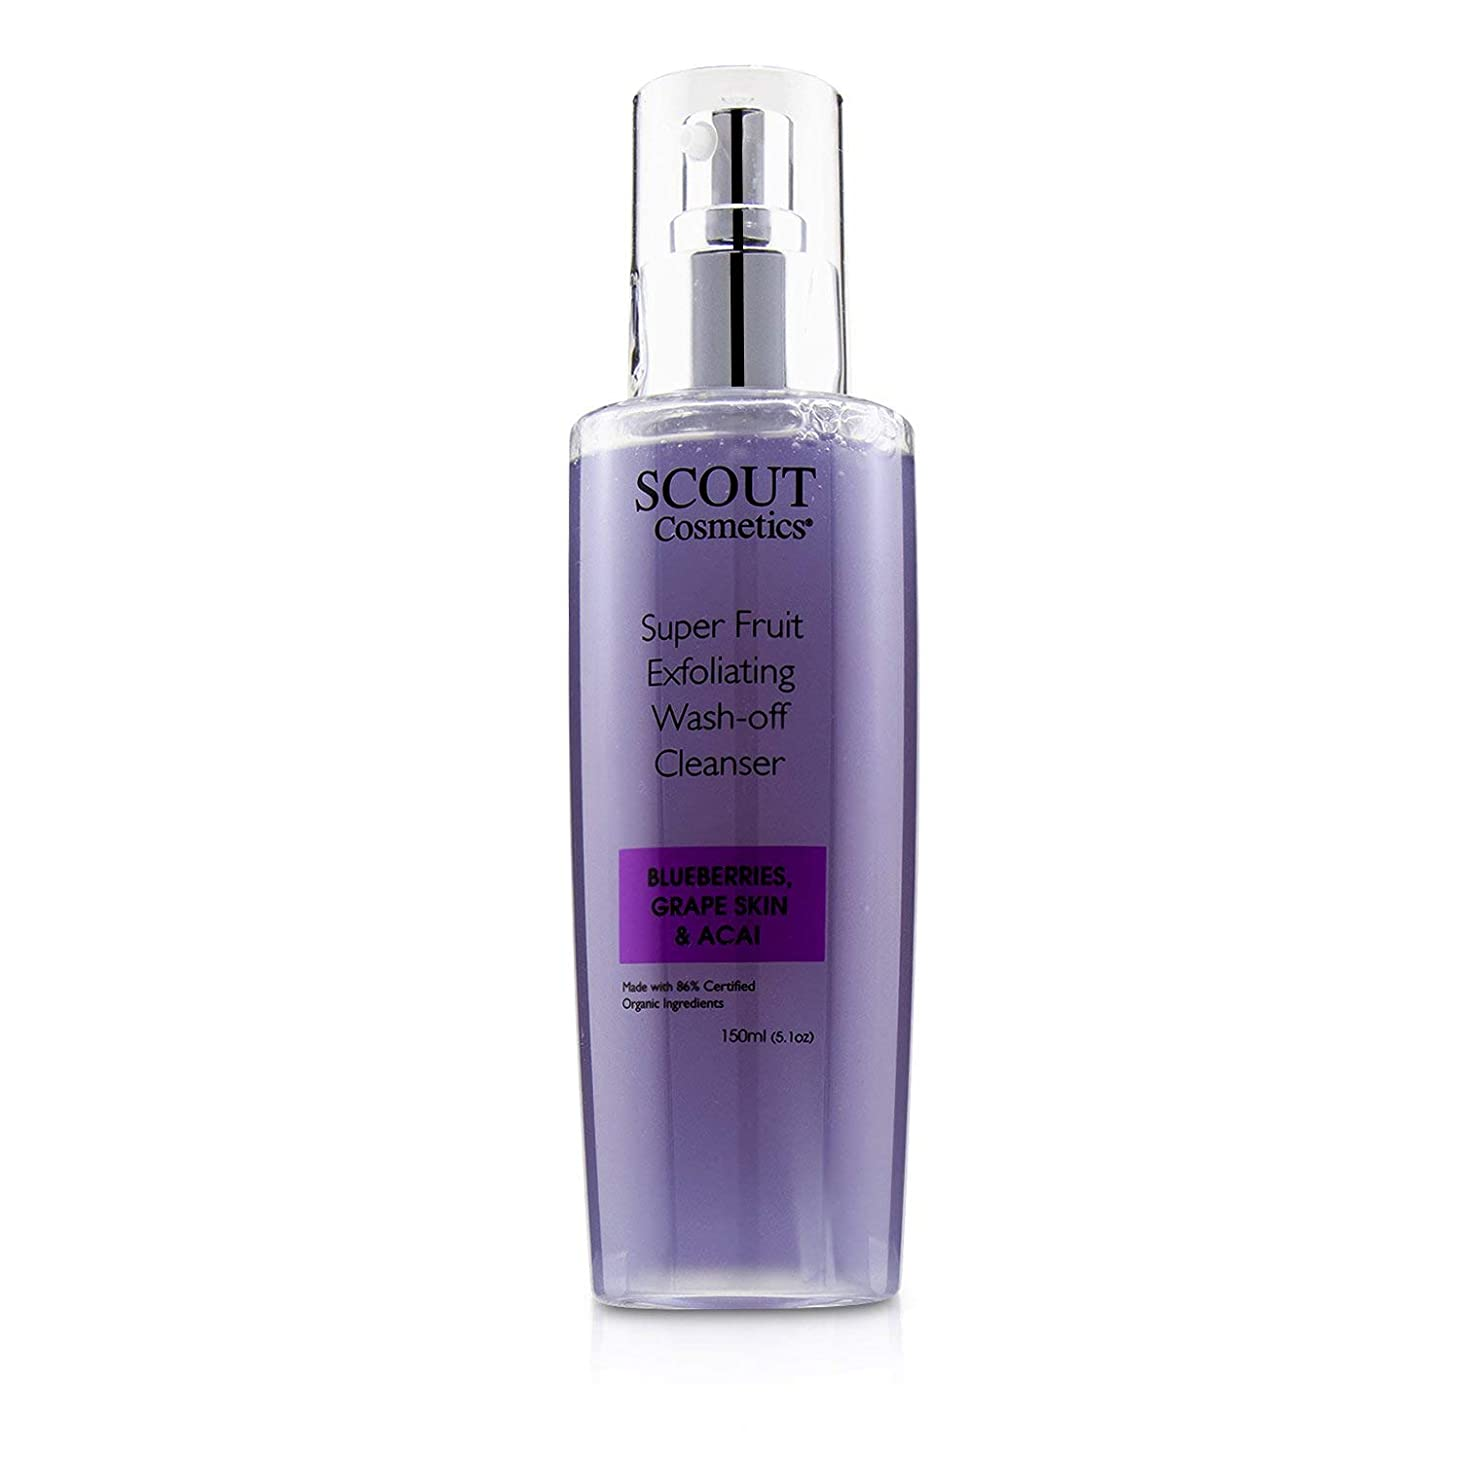 簿記係波紋エンゲージメントSCOUT Cosmetics Super Fruit Exfoliating Wash-Off Cleanser with Blueberries, Grape Skin & Acai 150ml/5.1oz並行輸入品